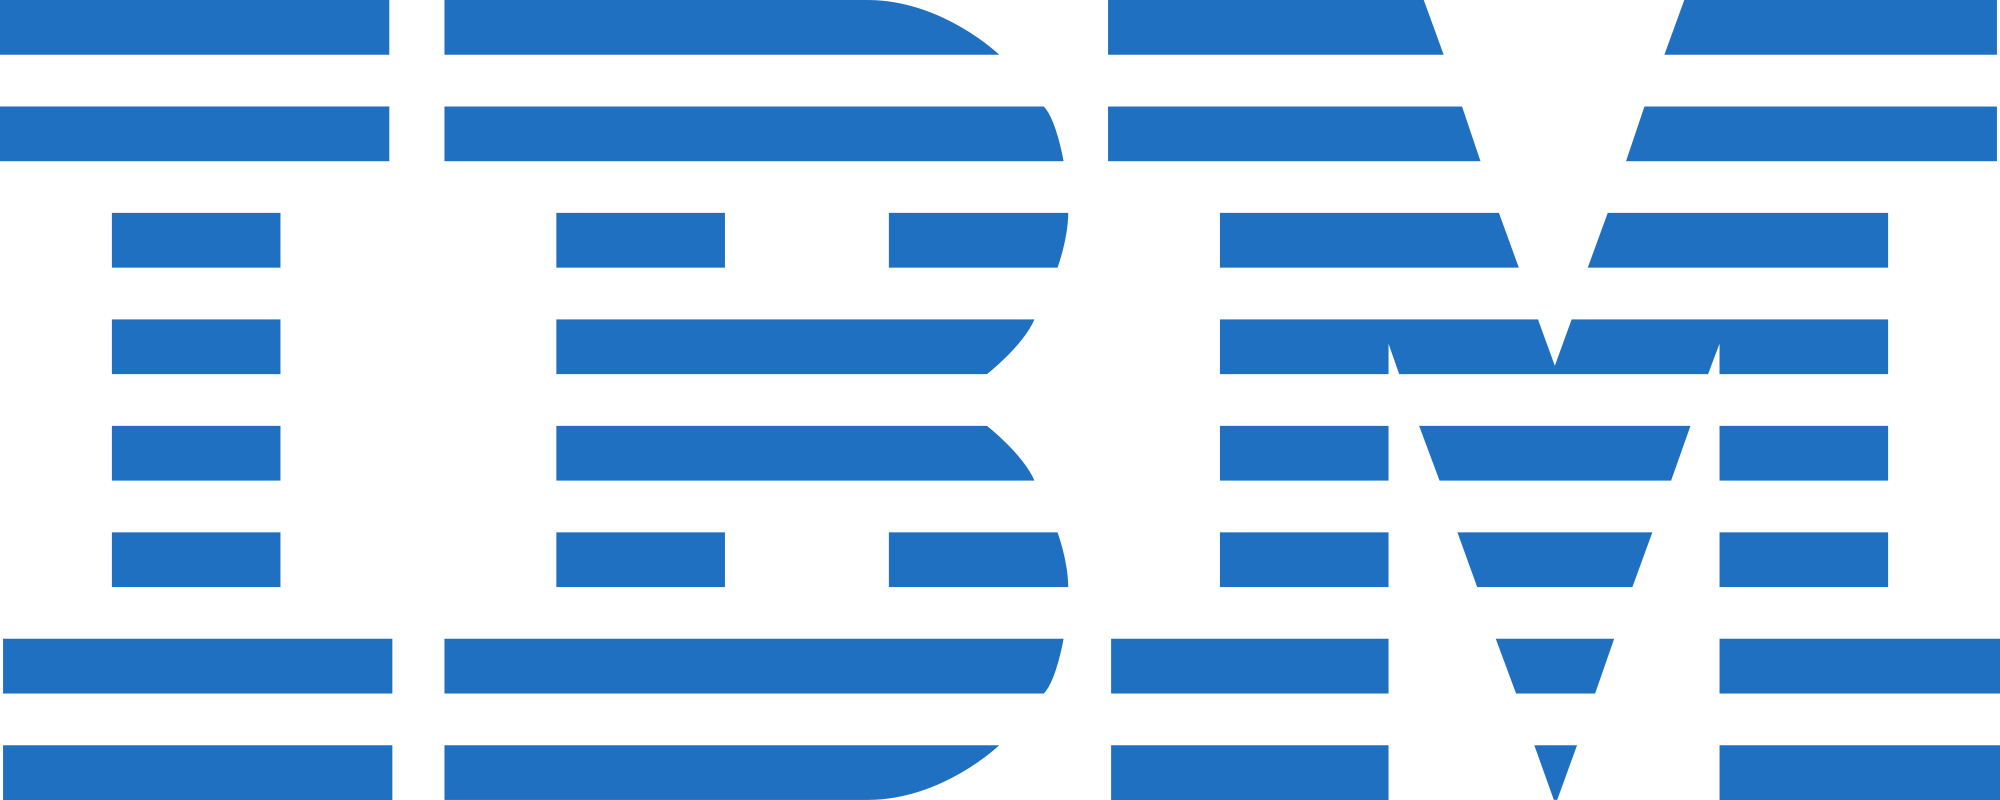 IBM Partners with SecureKey Technologies to Deliver Blockchain-Based Digital Identity Network